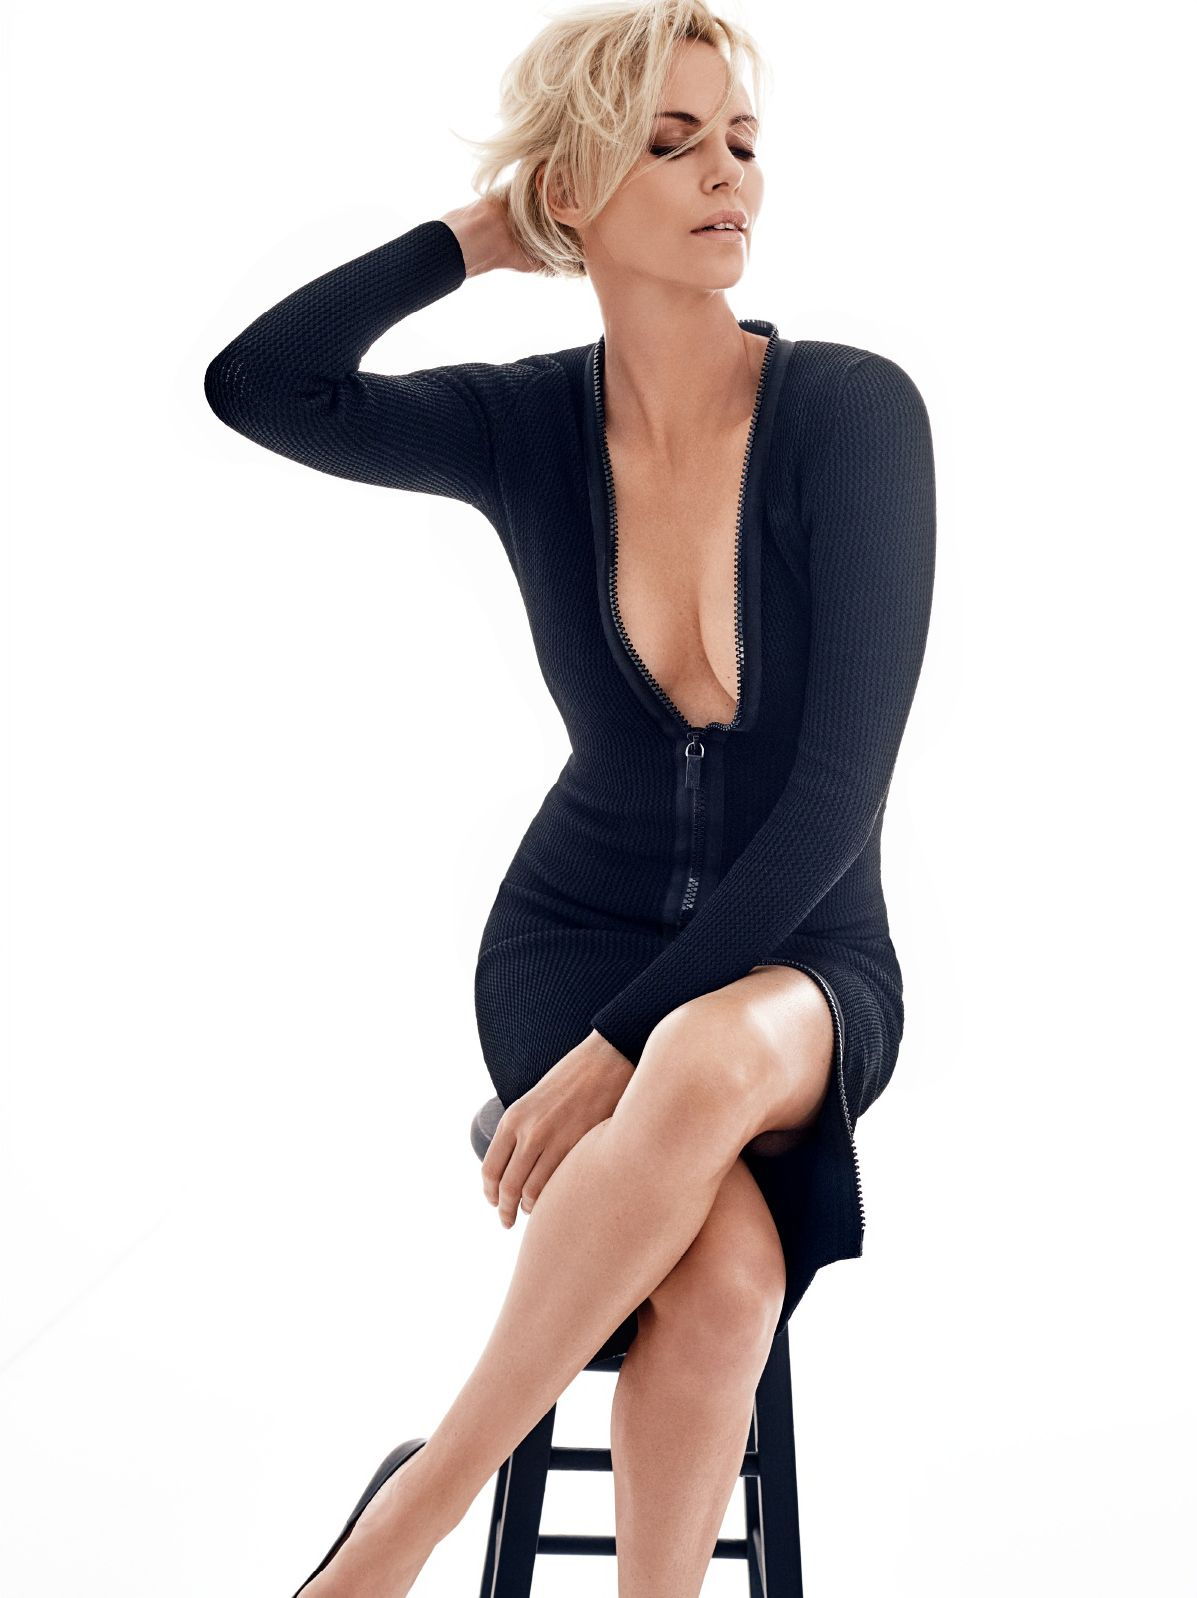 Charlize-Theron-Sexy-6